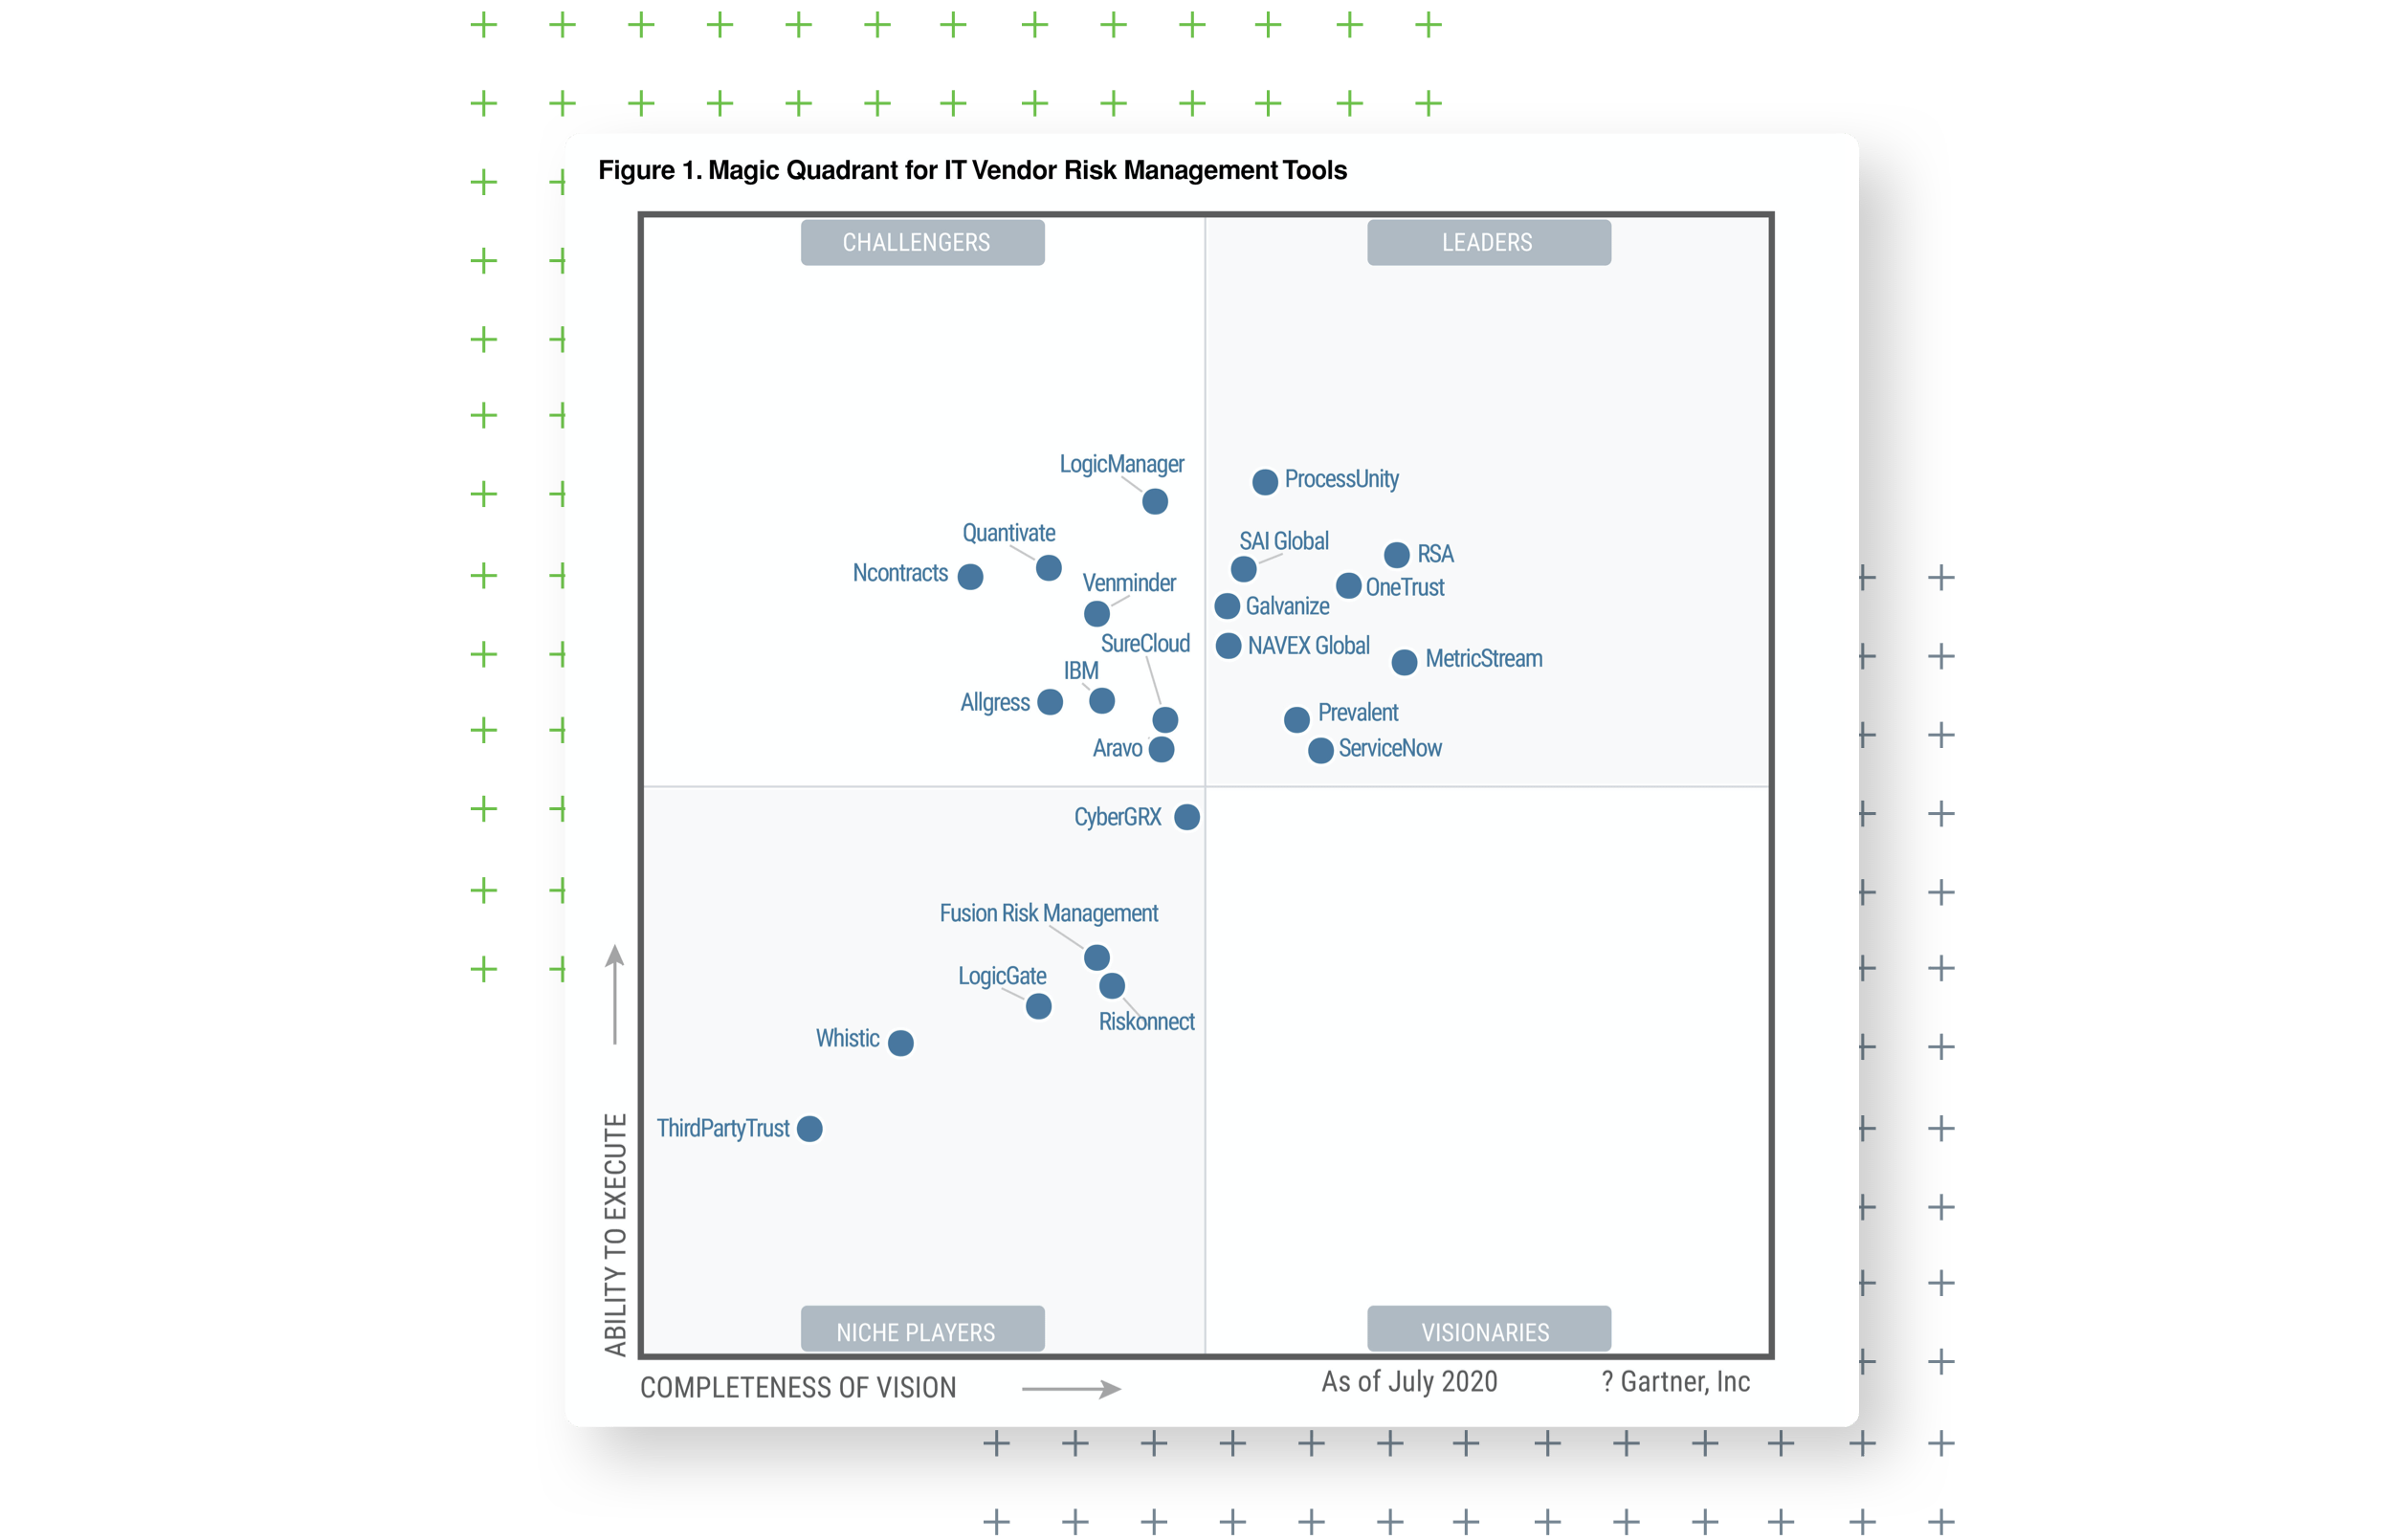 2020 Magic Quadrant for IT VRM Tools